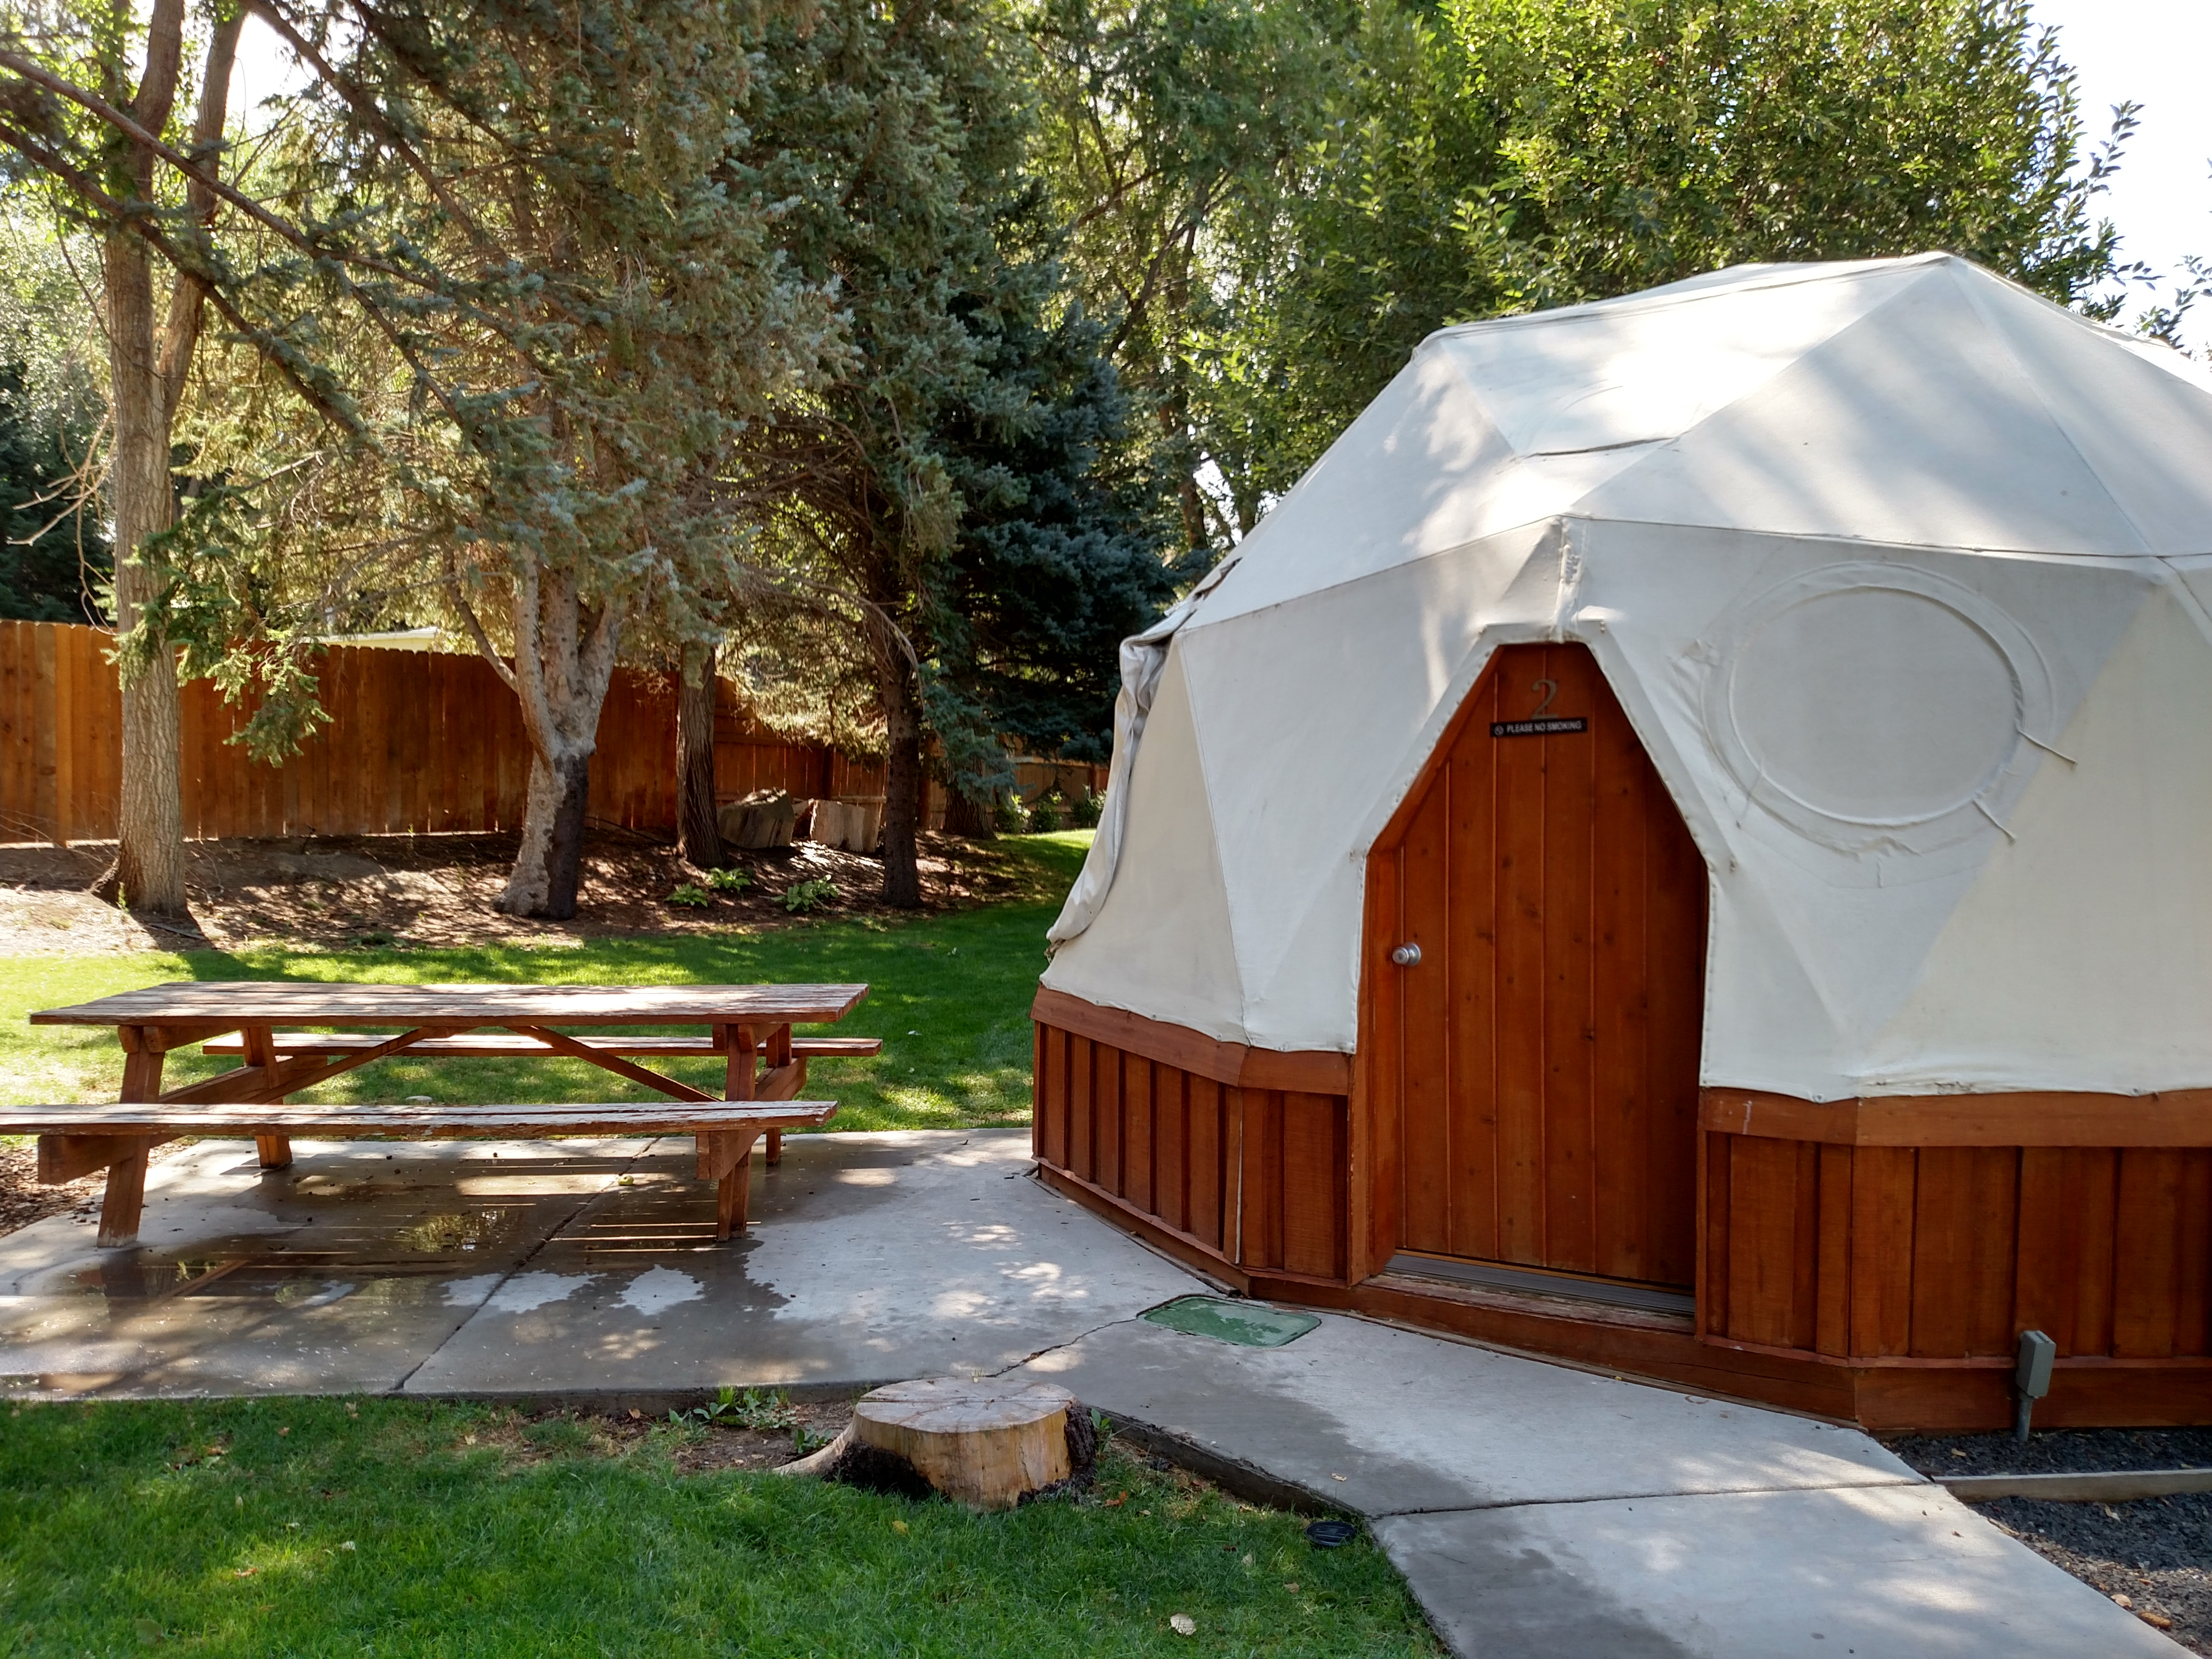 lodging domes for eco retreats eco resort glamping sites dome houses for resorts and retreats